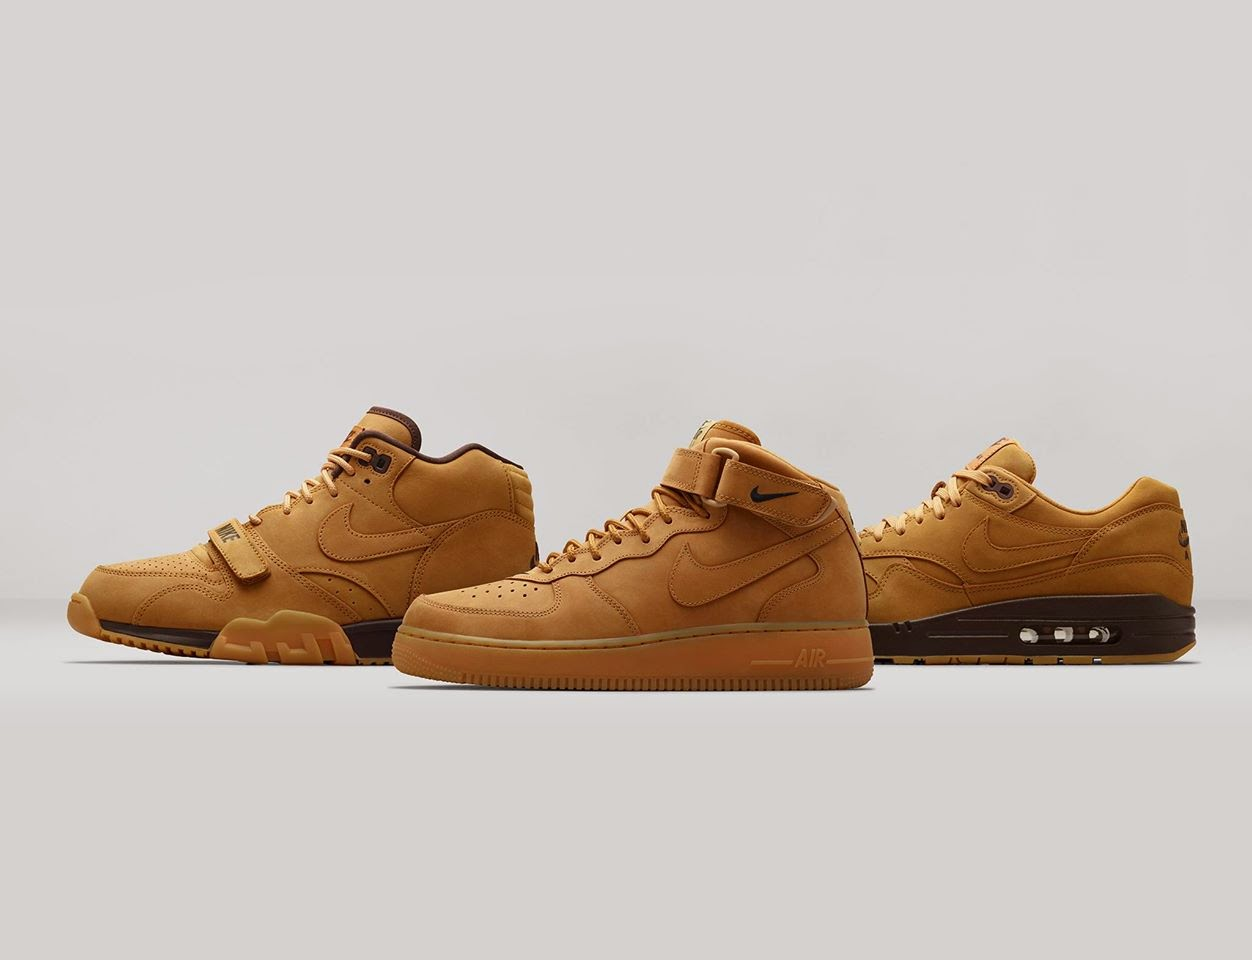 a84065b8fd8d1 Swag Craze  First Look  Nike Sportswear Flax Collection